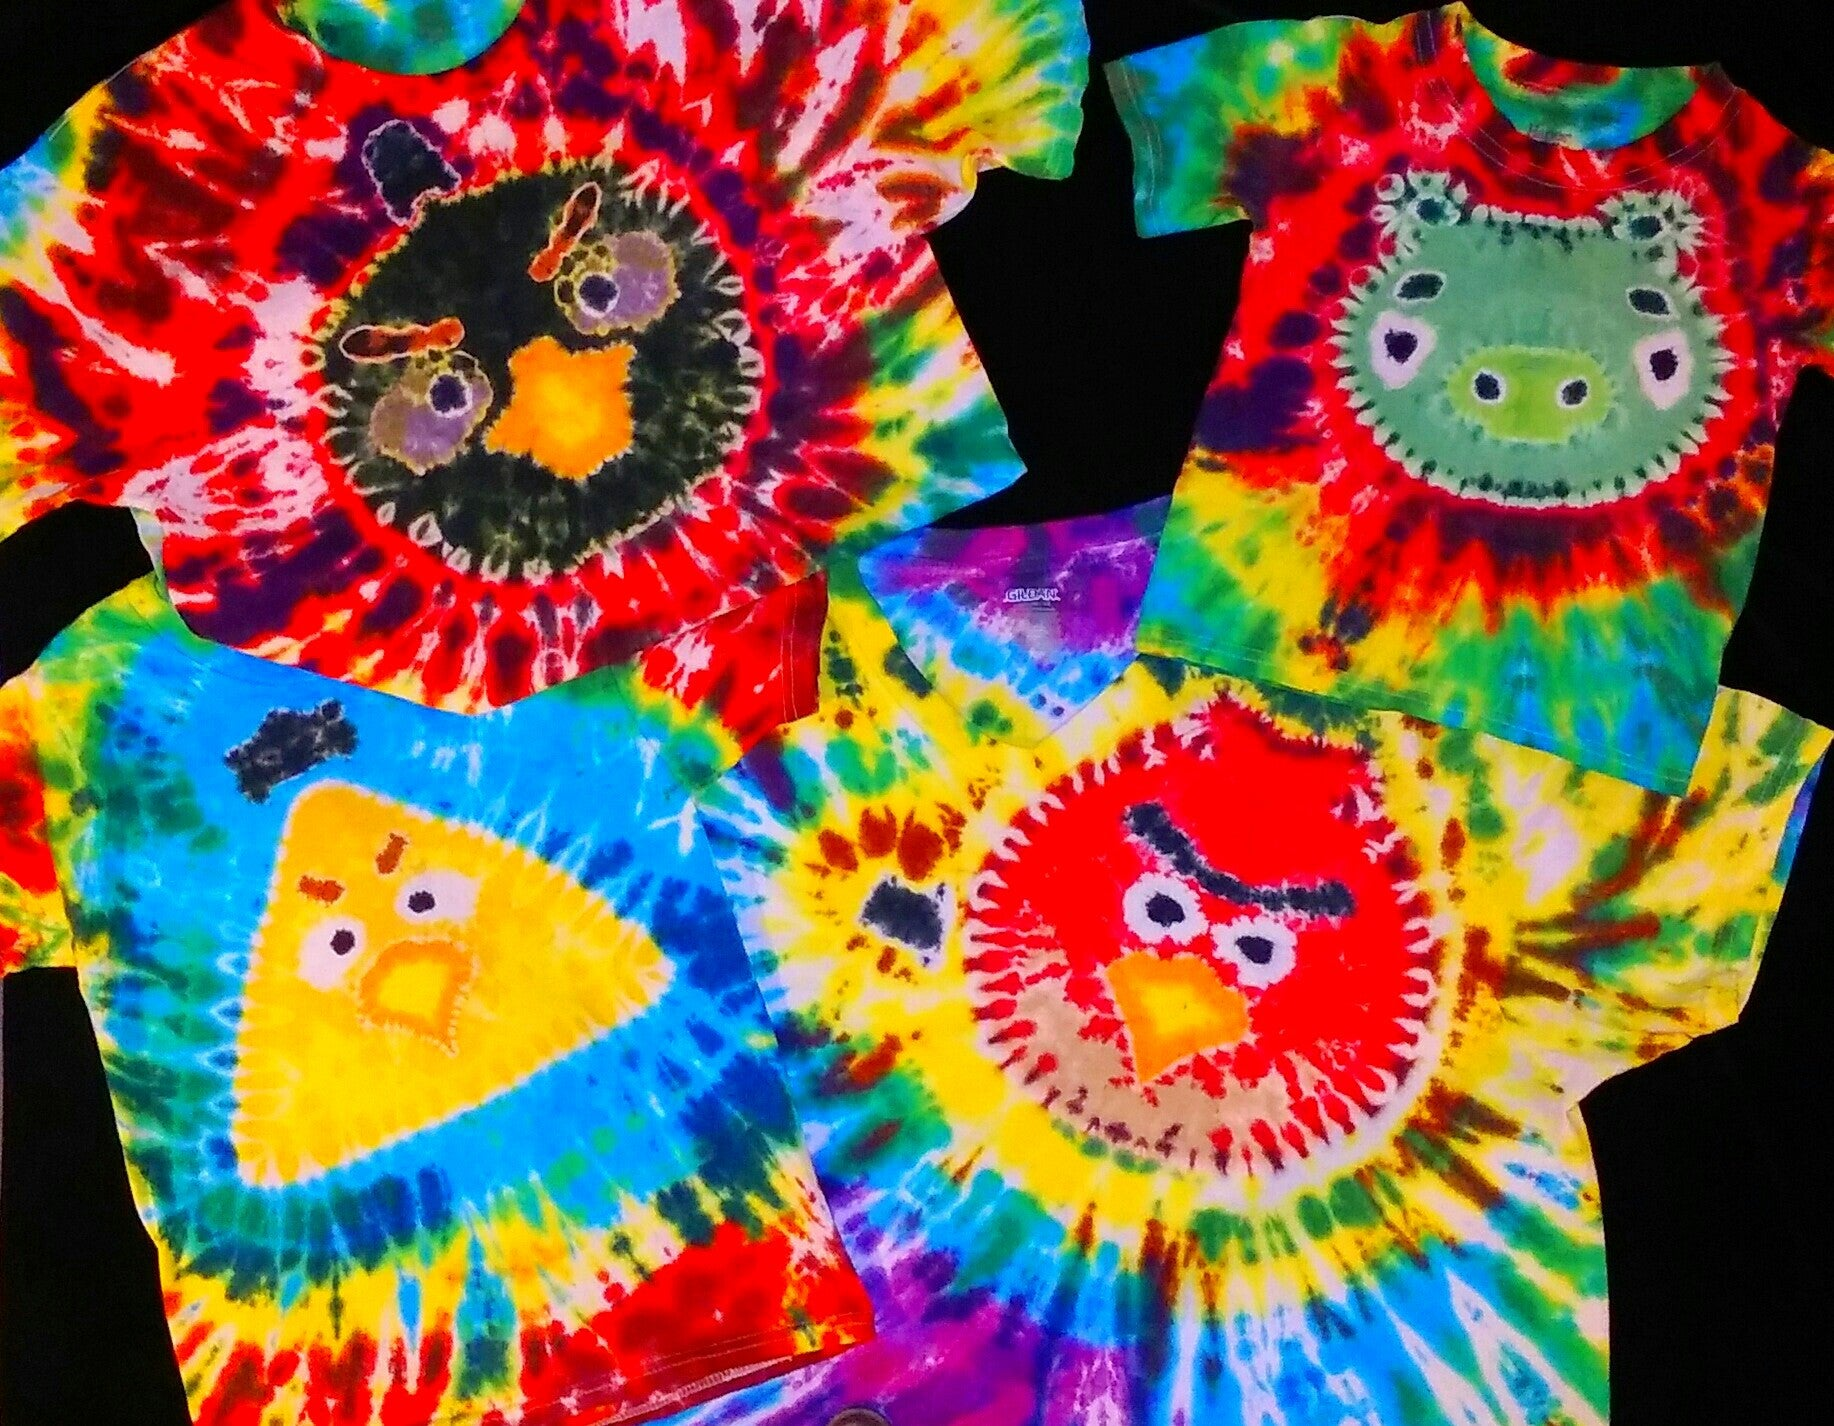 Colorful TIE DYE T-SHIRTS ANGRY BIRDS